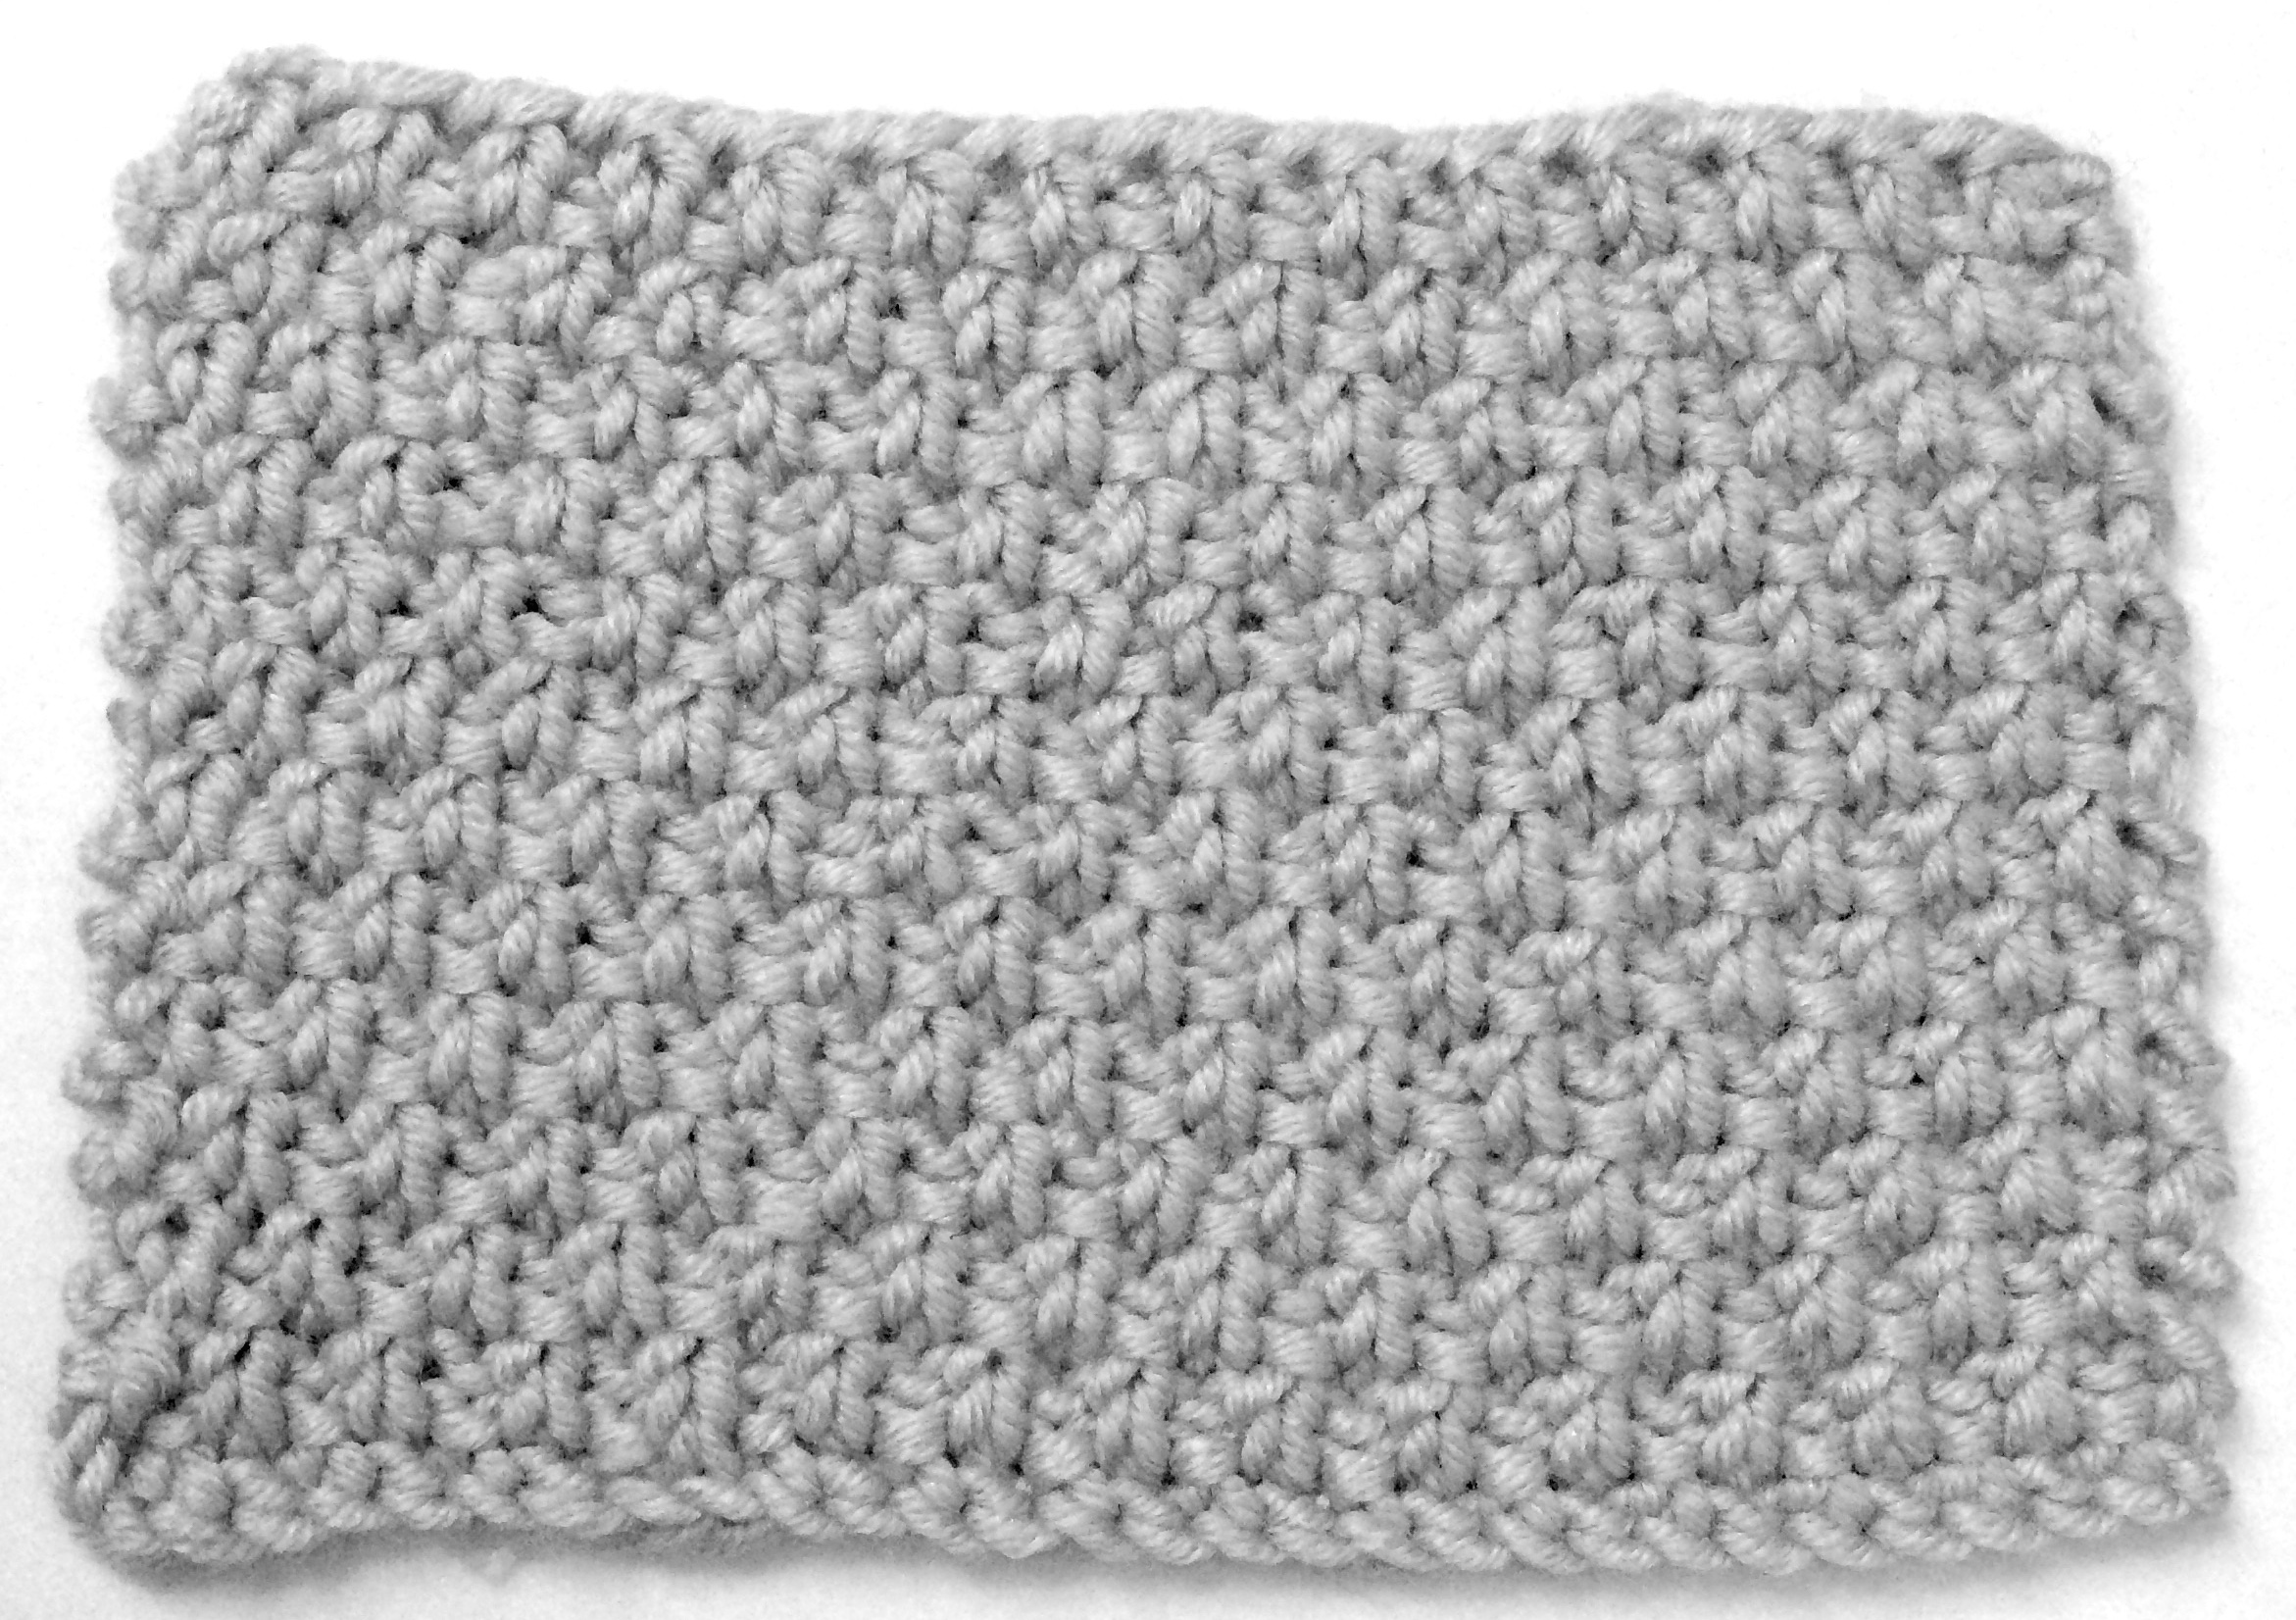 Knitting Double Seed Stitch In The Round : Stitch In Focus   Hand Knitting: Moss Stitch/Seed Stitch Florence Spurling ...